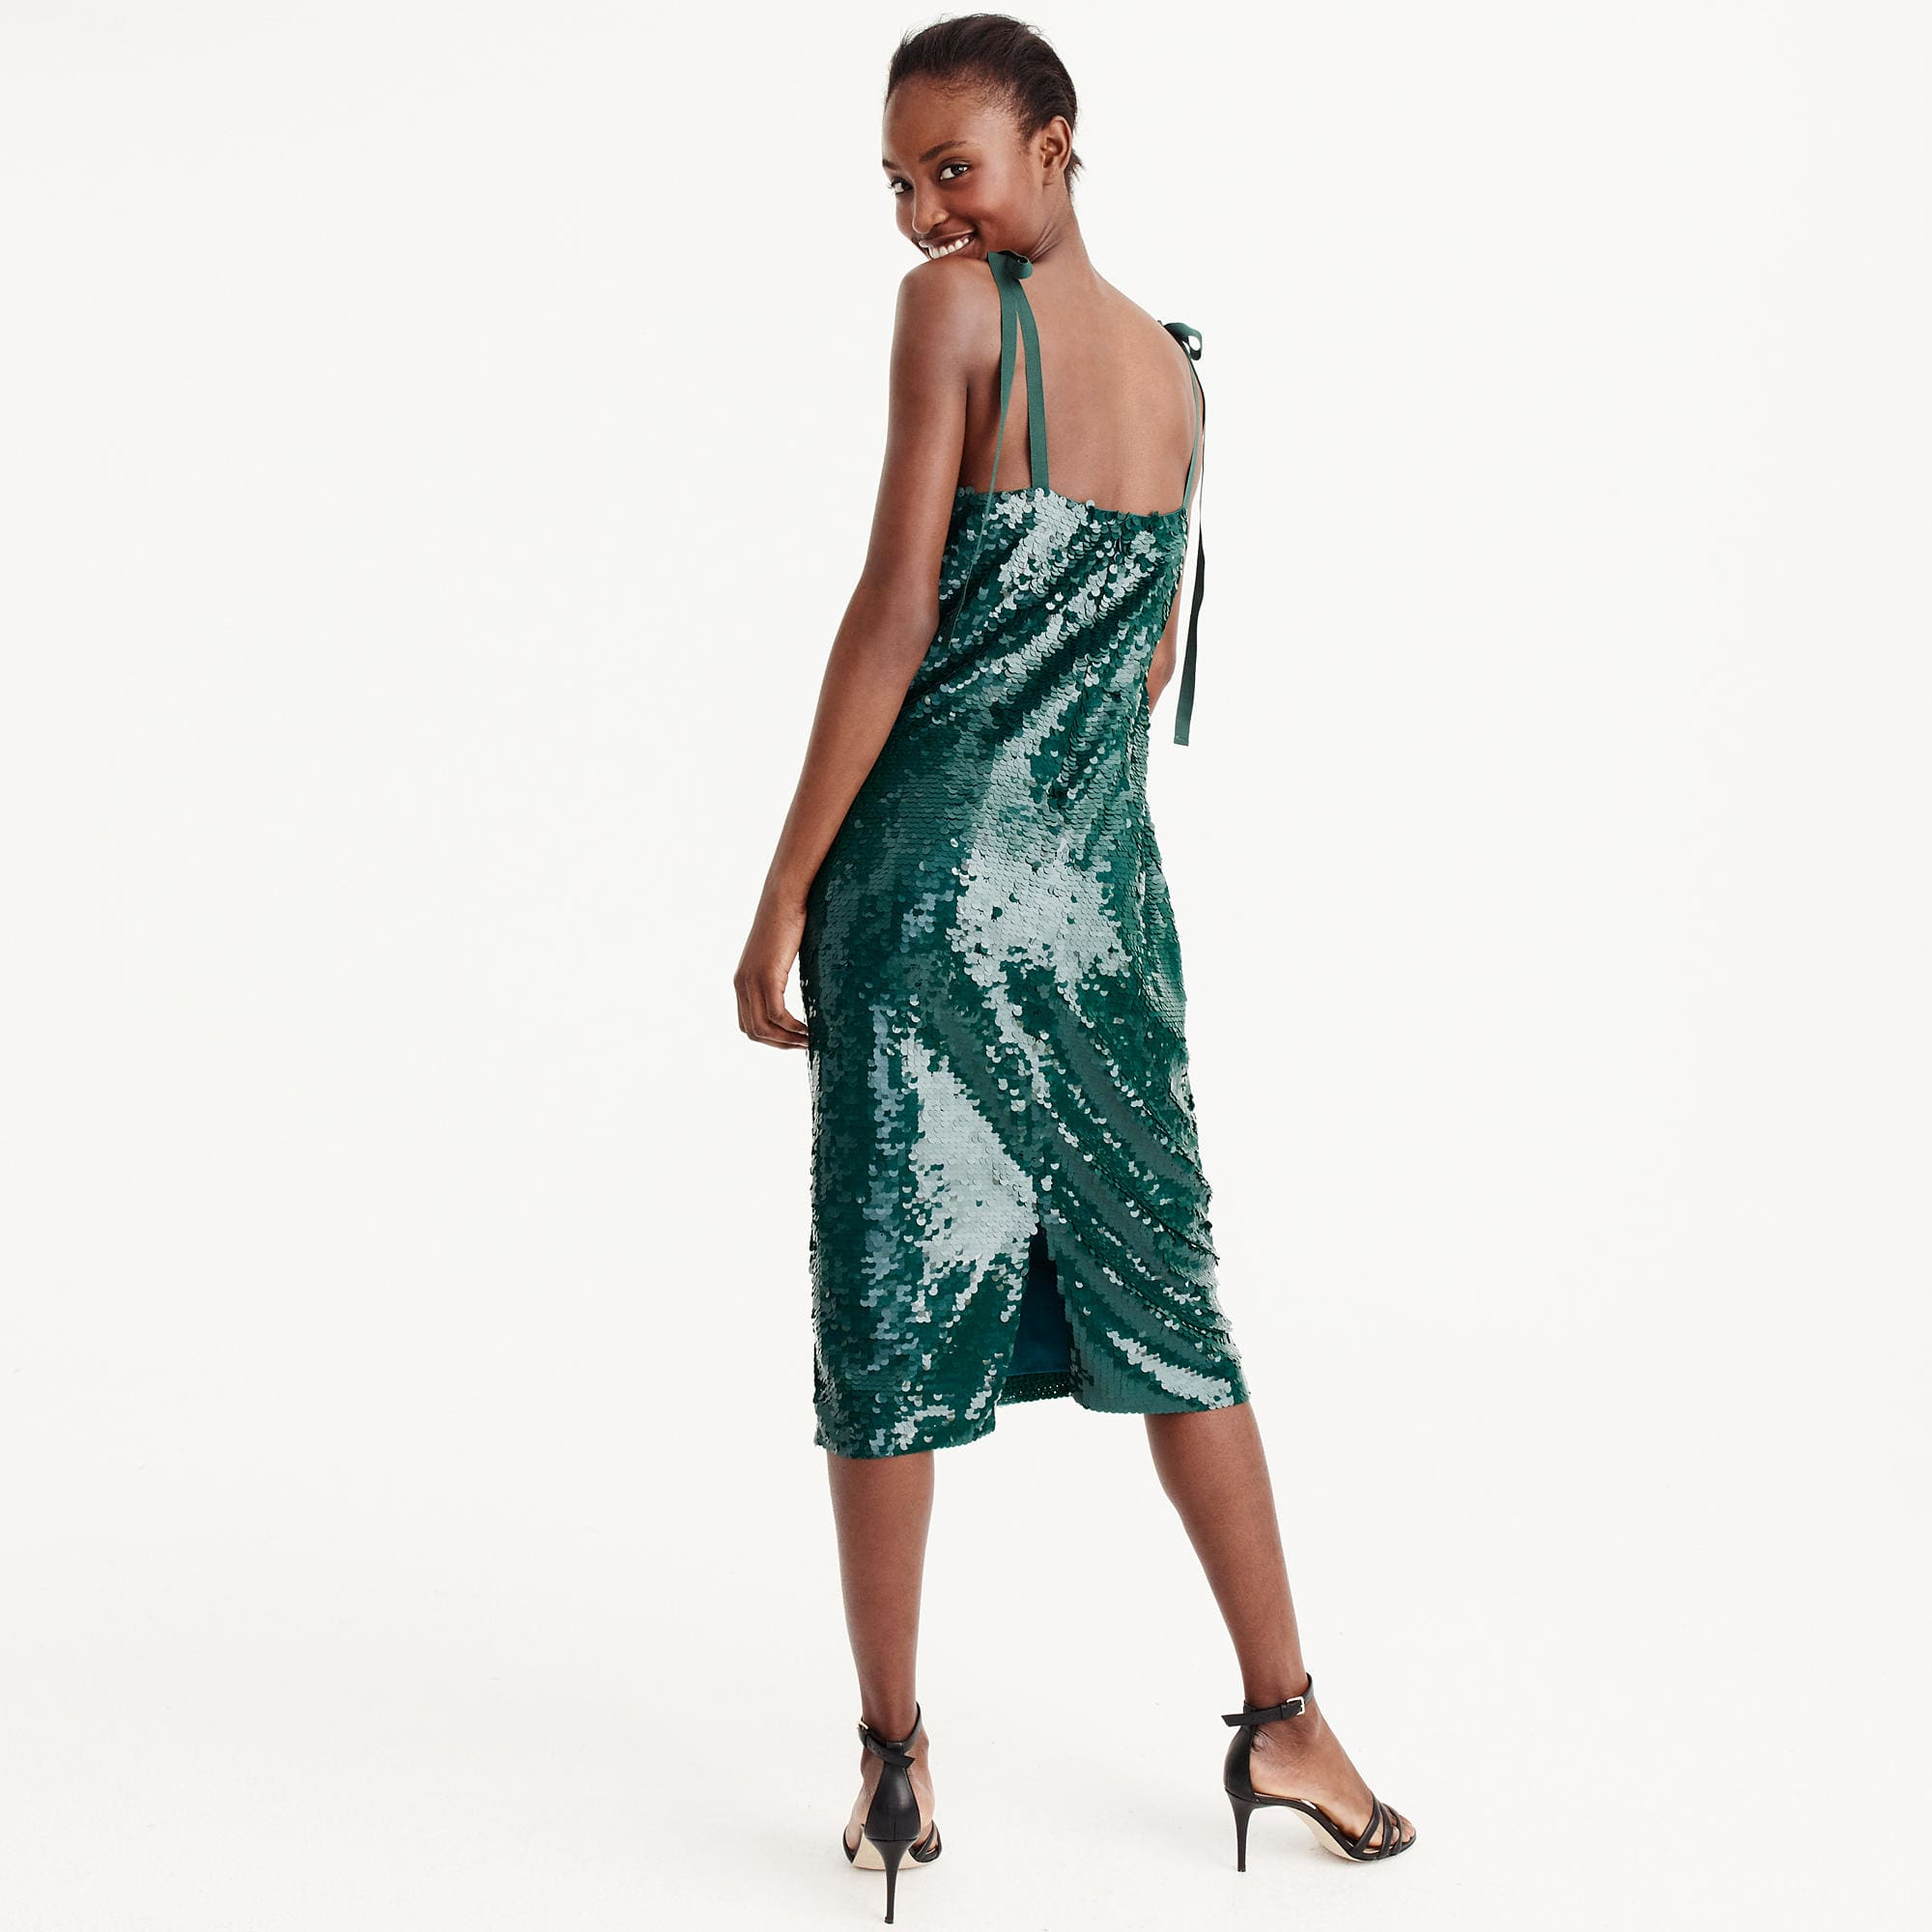 <p>Collection tie-shoulder sequin dress - $298. I can't get enough of this collection tie-shoulder sequin dress.{&amp;nbsp;} Pair with some open toed heels, pink lips and a romantic up-do.{&amp;nbsp;} (Image: JCrew){&amp;nbsp;}</p><p></p>